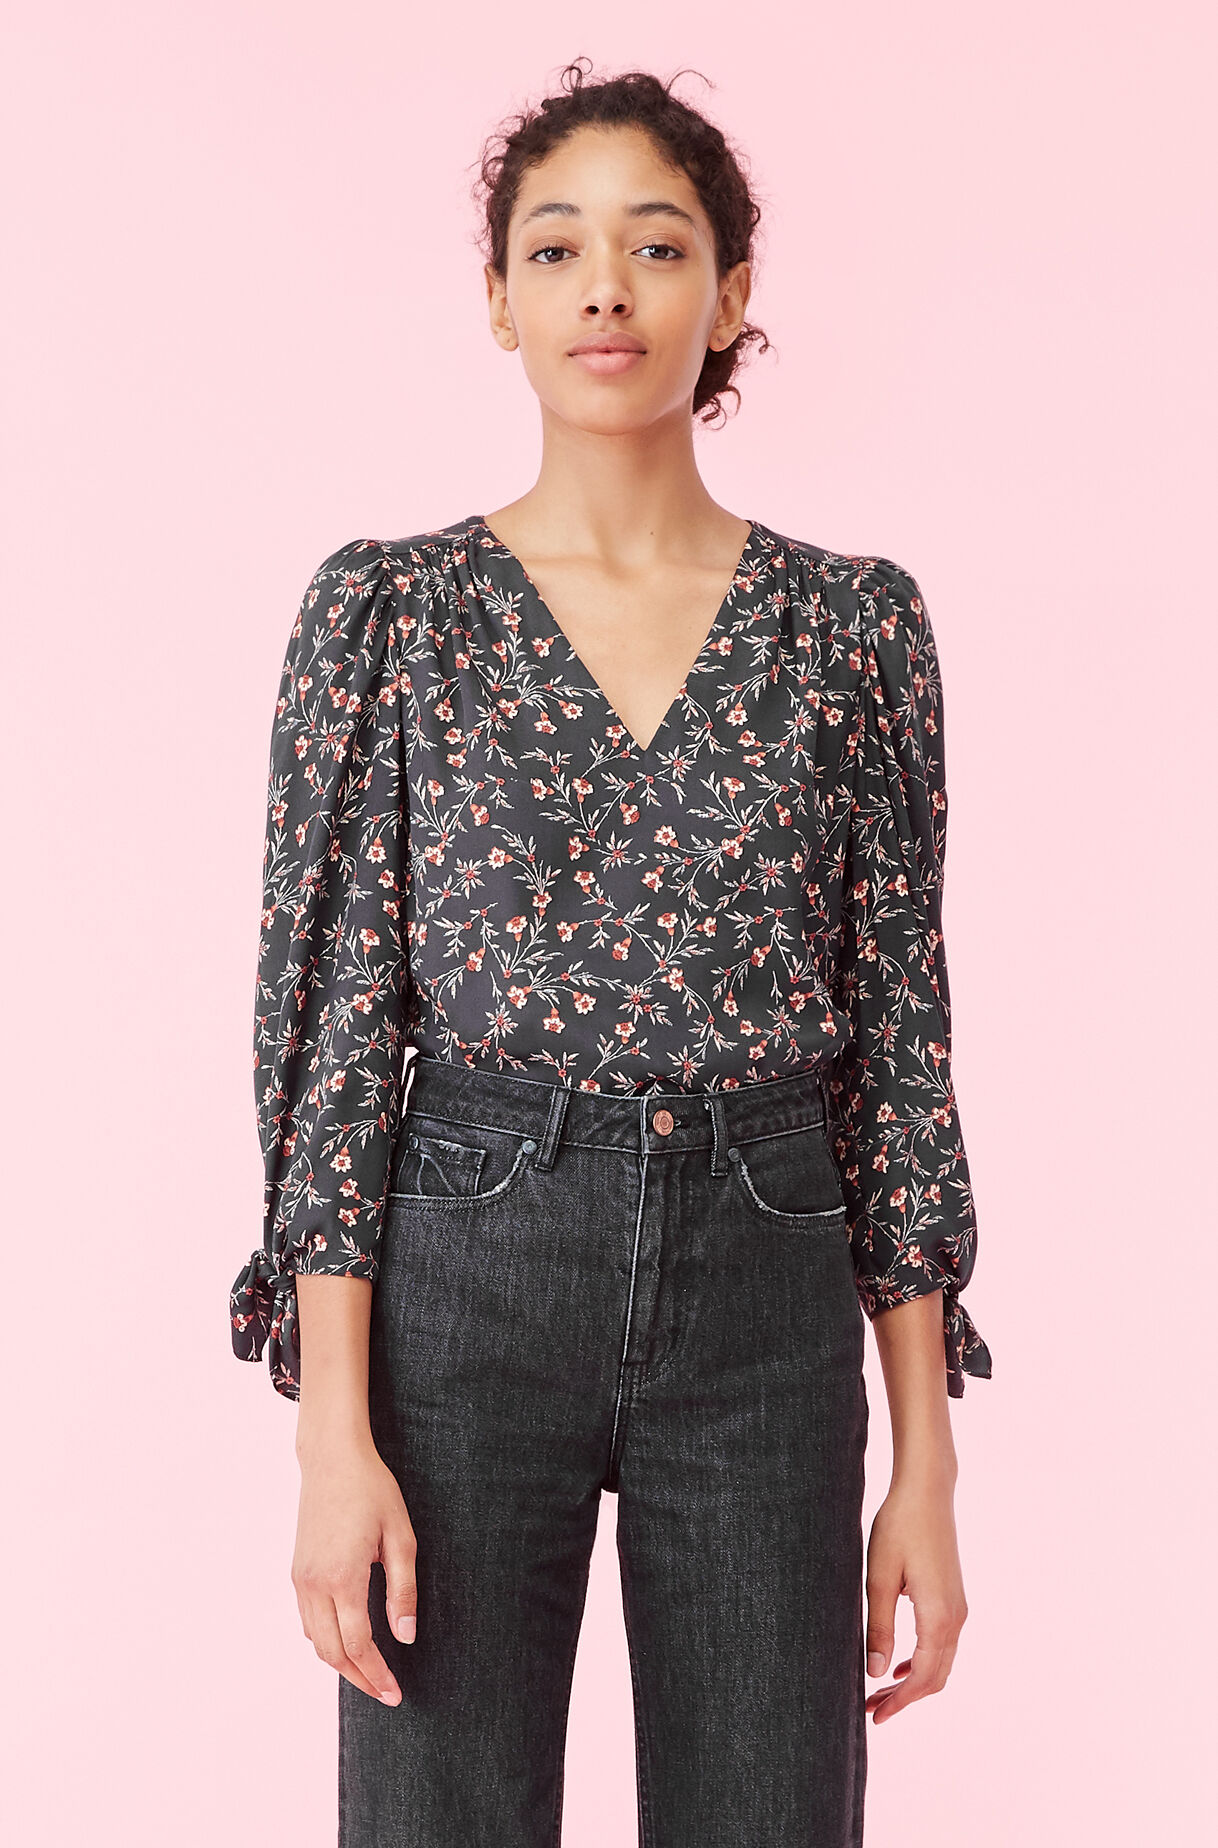 Lia Floral Silk Twill Top, , large